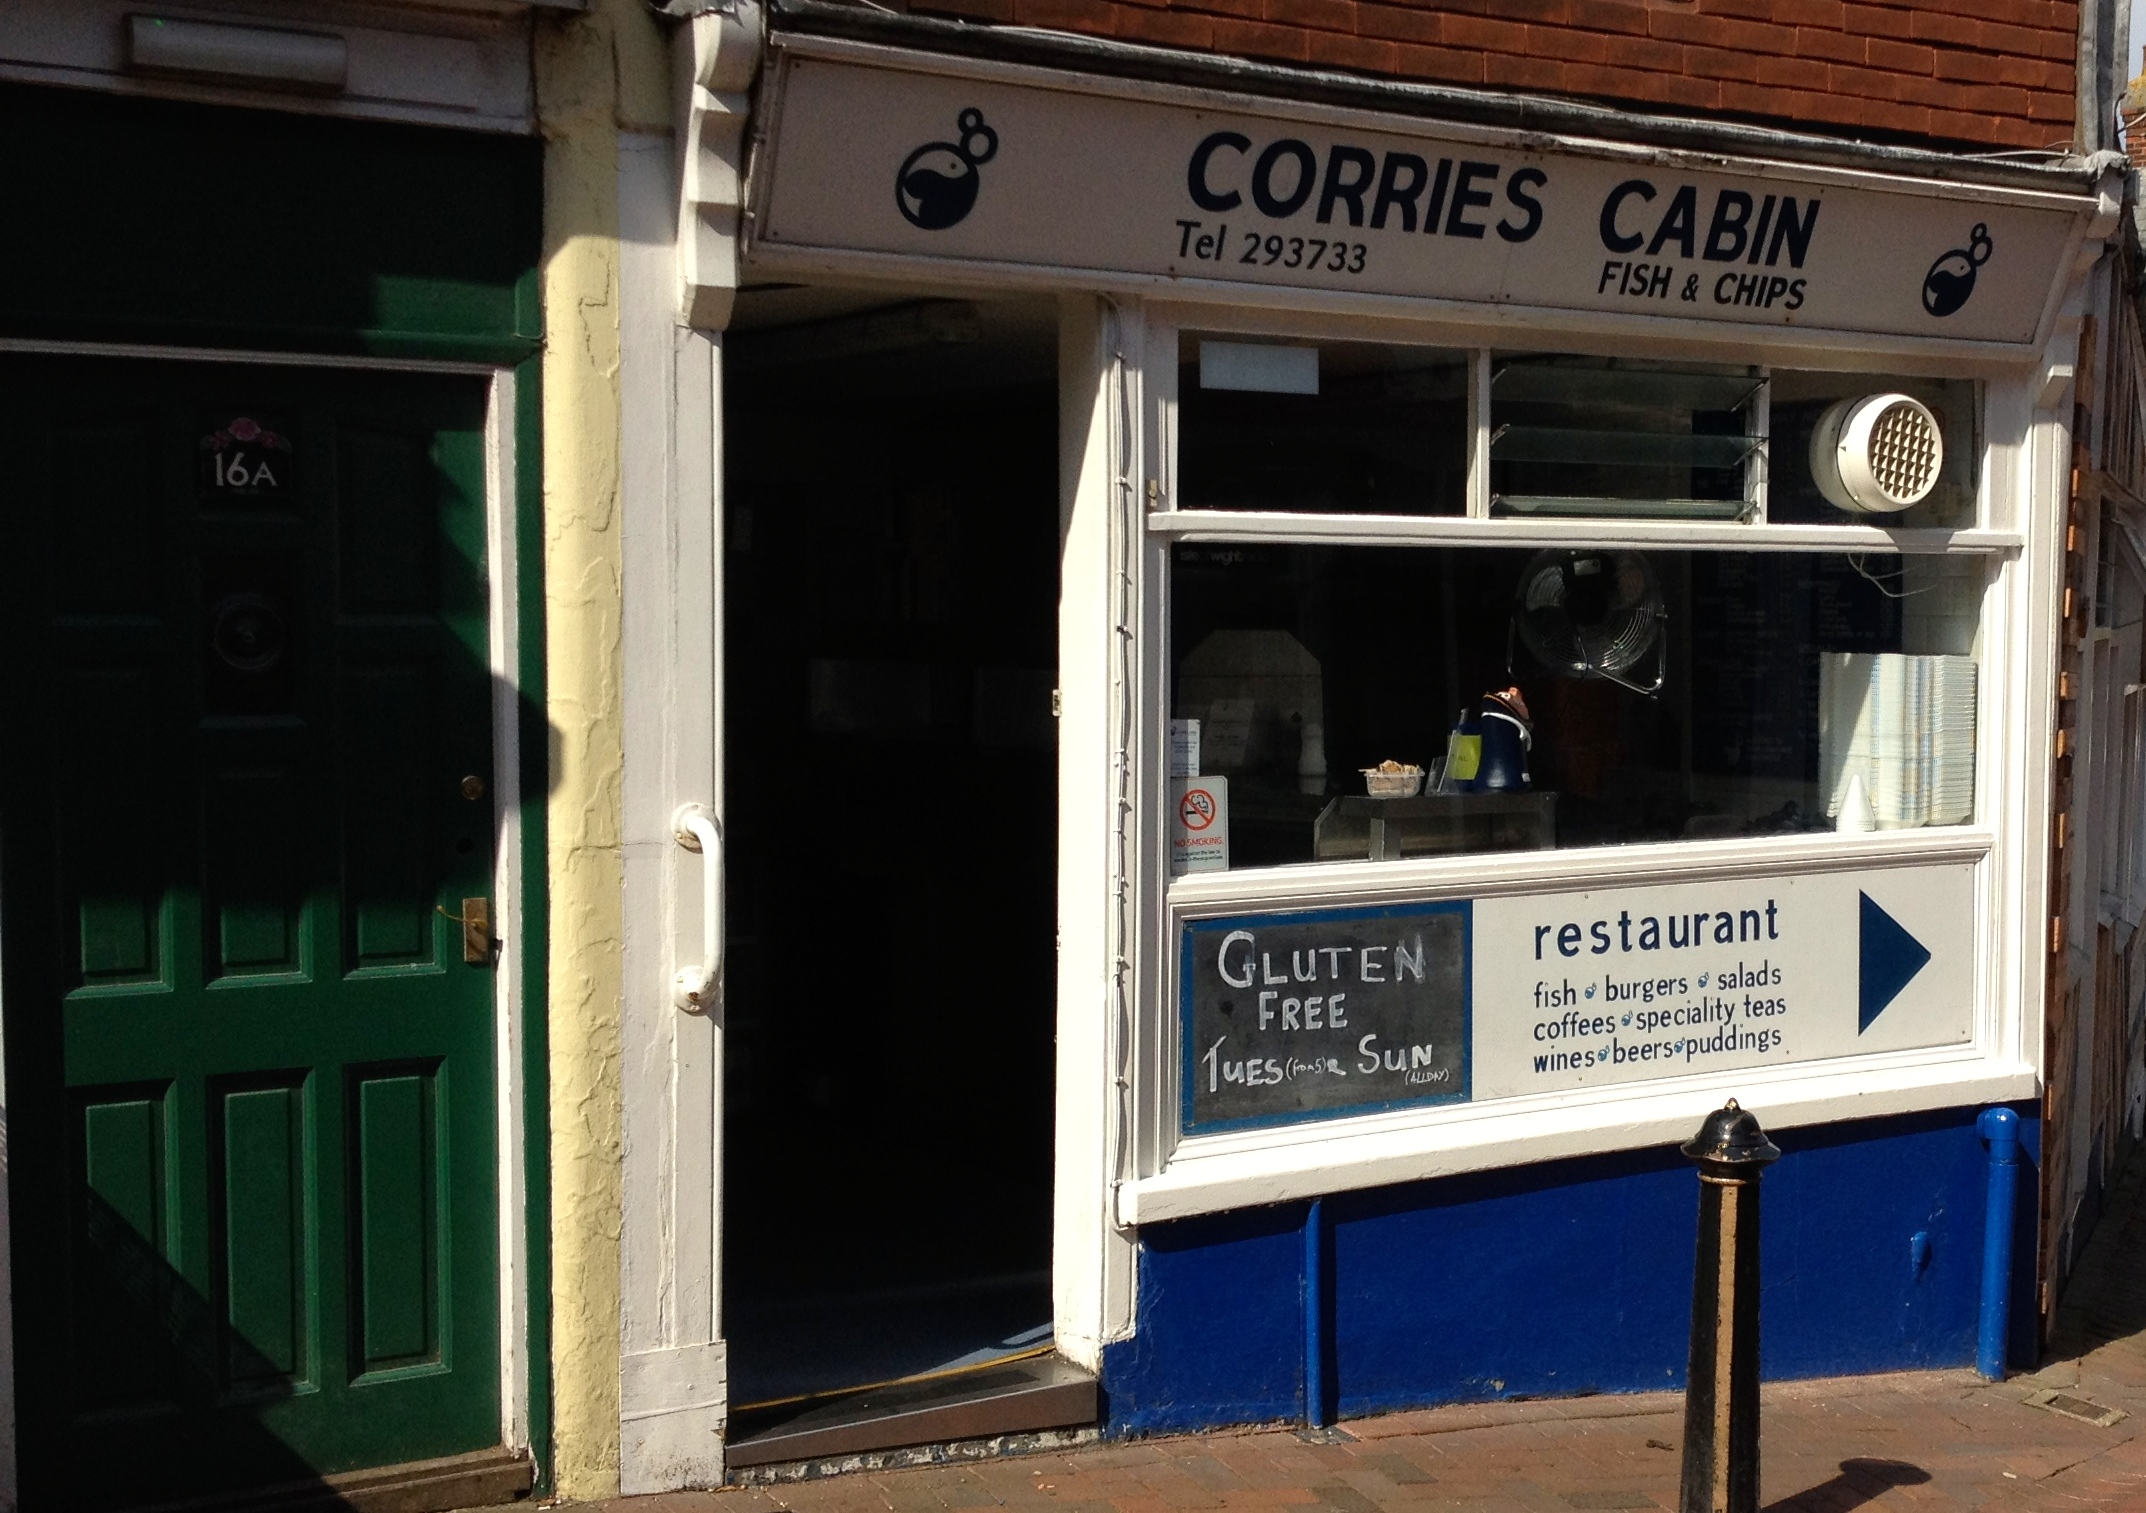 Corries Cabin, 17 Shooters Hill, Cowes, Isle of White